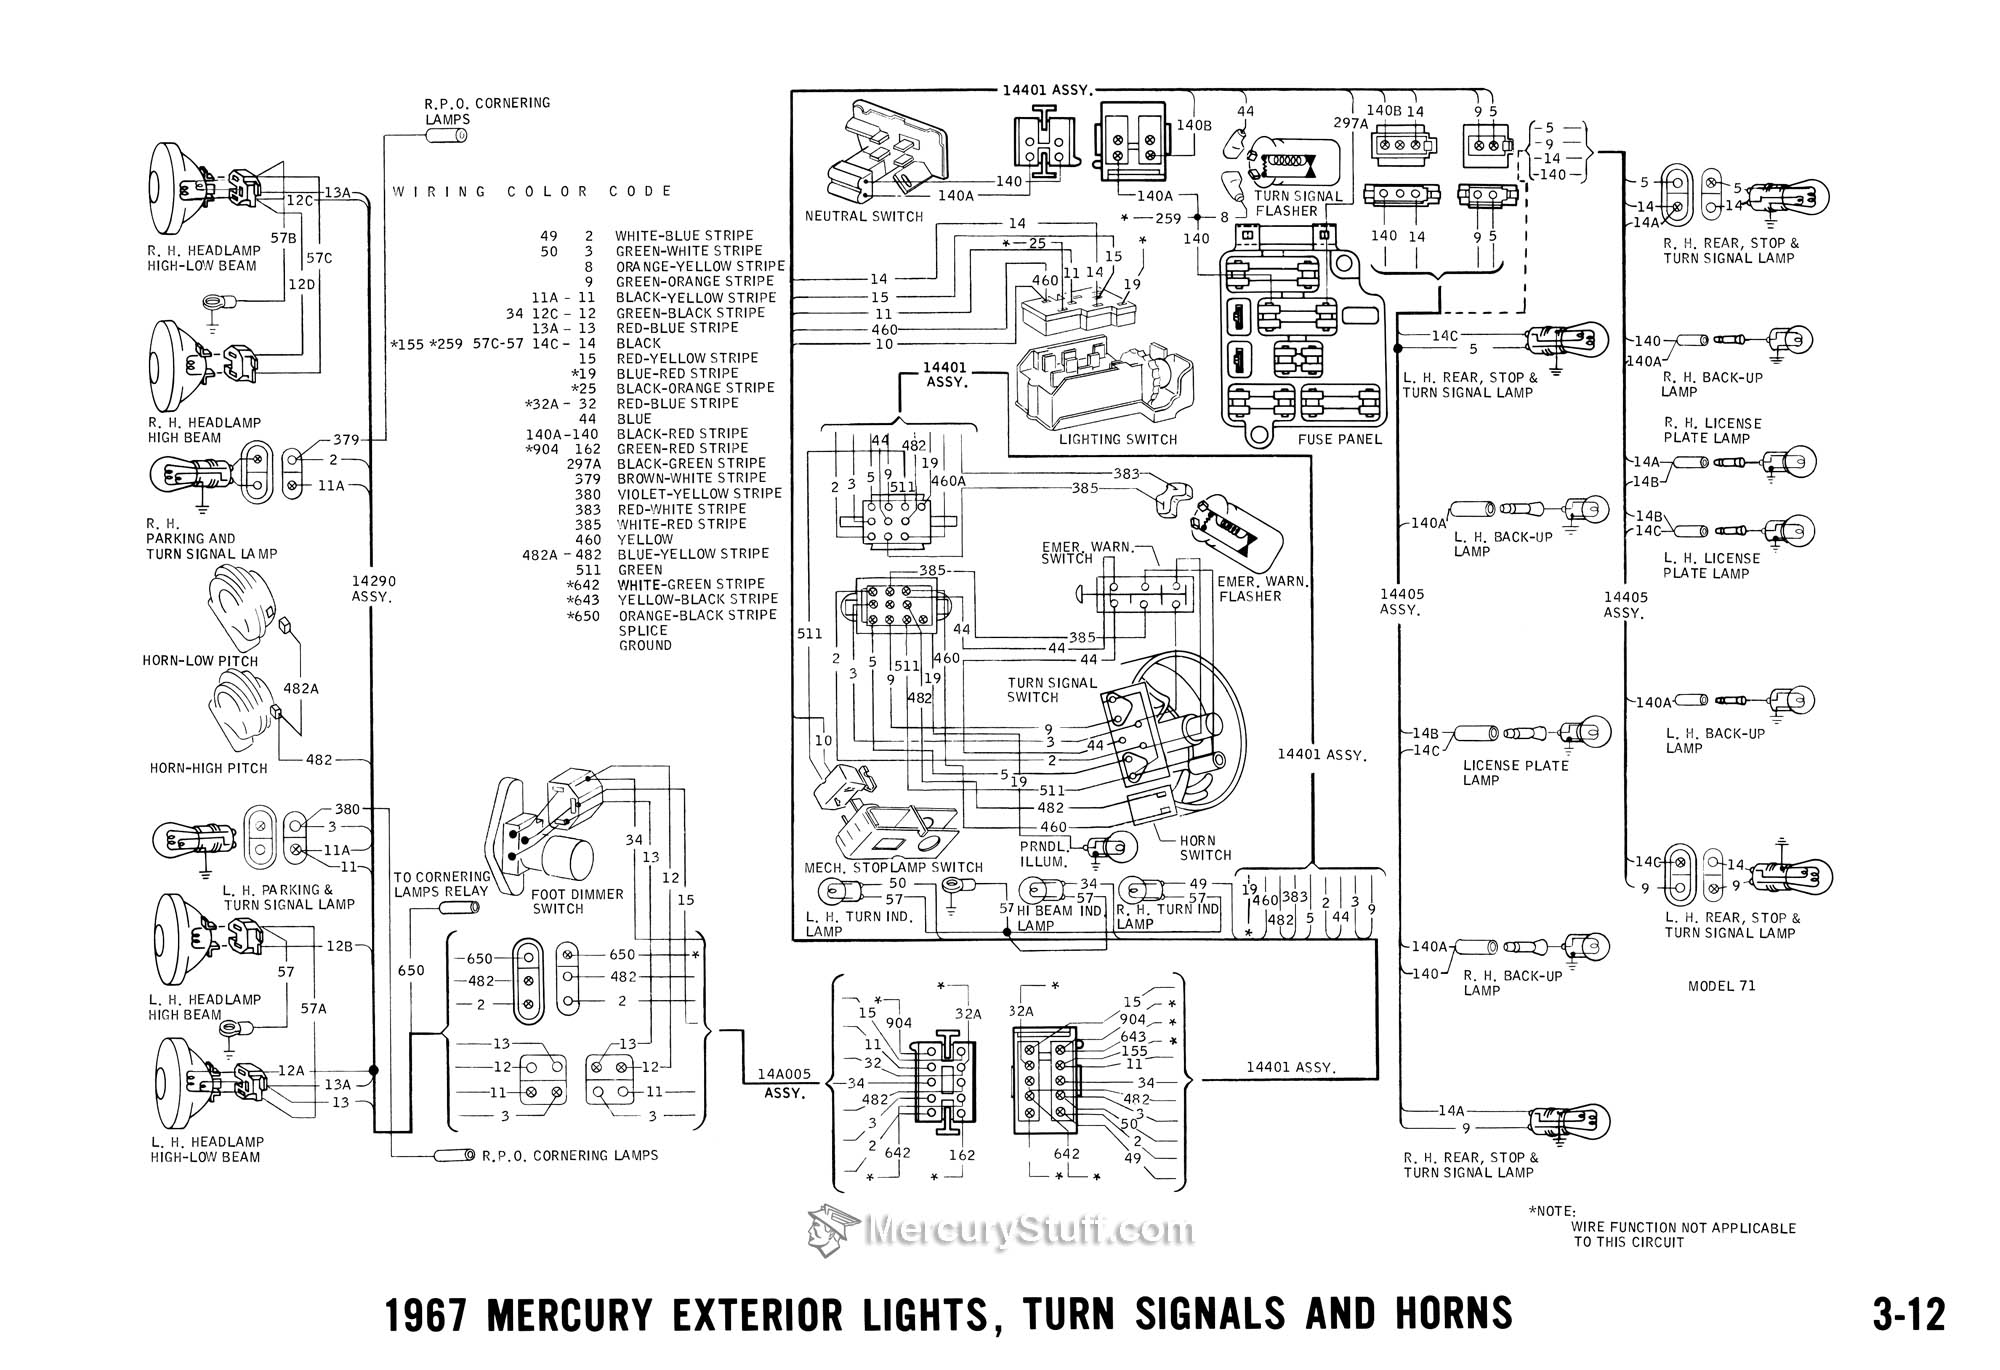 1967 mercury exterior lights turn signals horns wiring diagram 2006 mercury grand marquis the wiring diagram 2001 mercury cougar alternator wiring diagram at mifinder.co